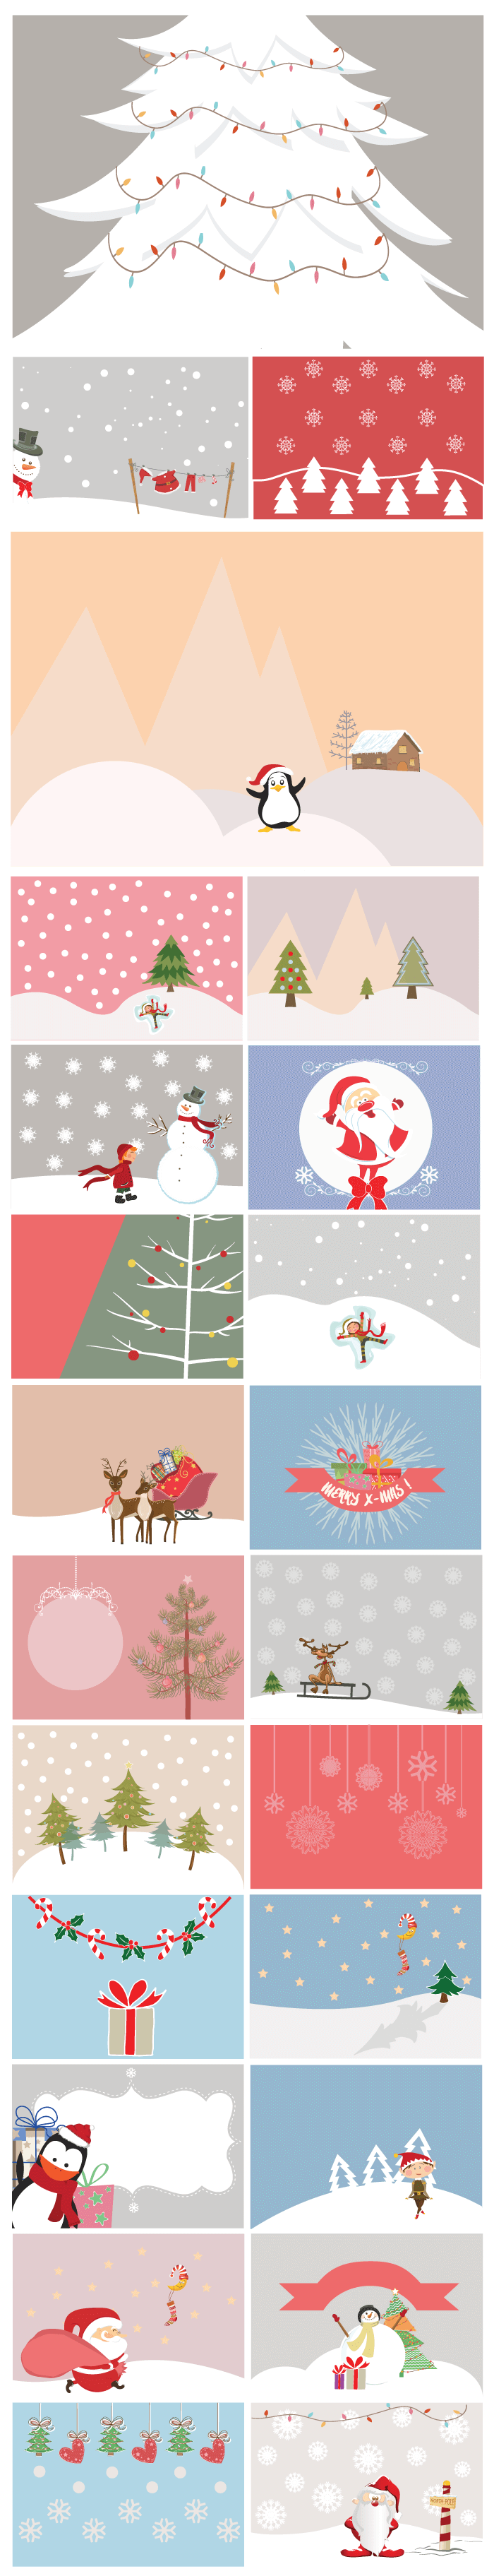 700px_winter-illustrations-set-5